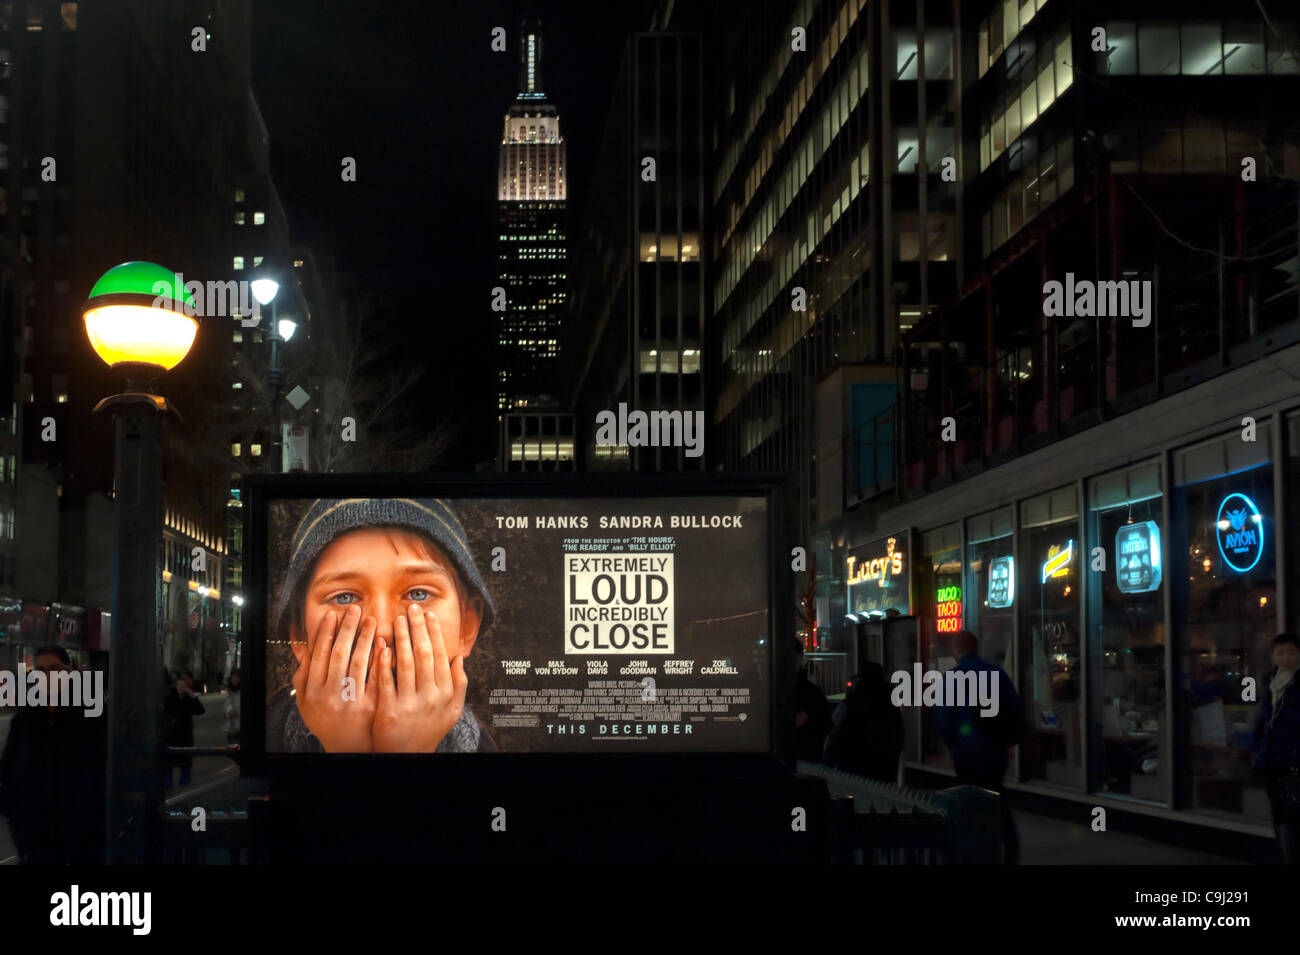 Manhattan, New York, USA - January 9, 2012: Movie poster 'Extremely Loud & Incredibly Close' hangs lit - Stock Image